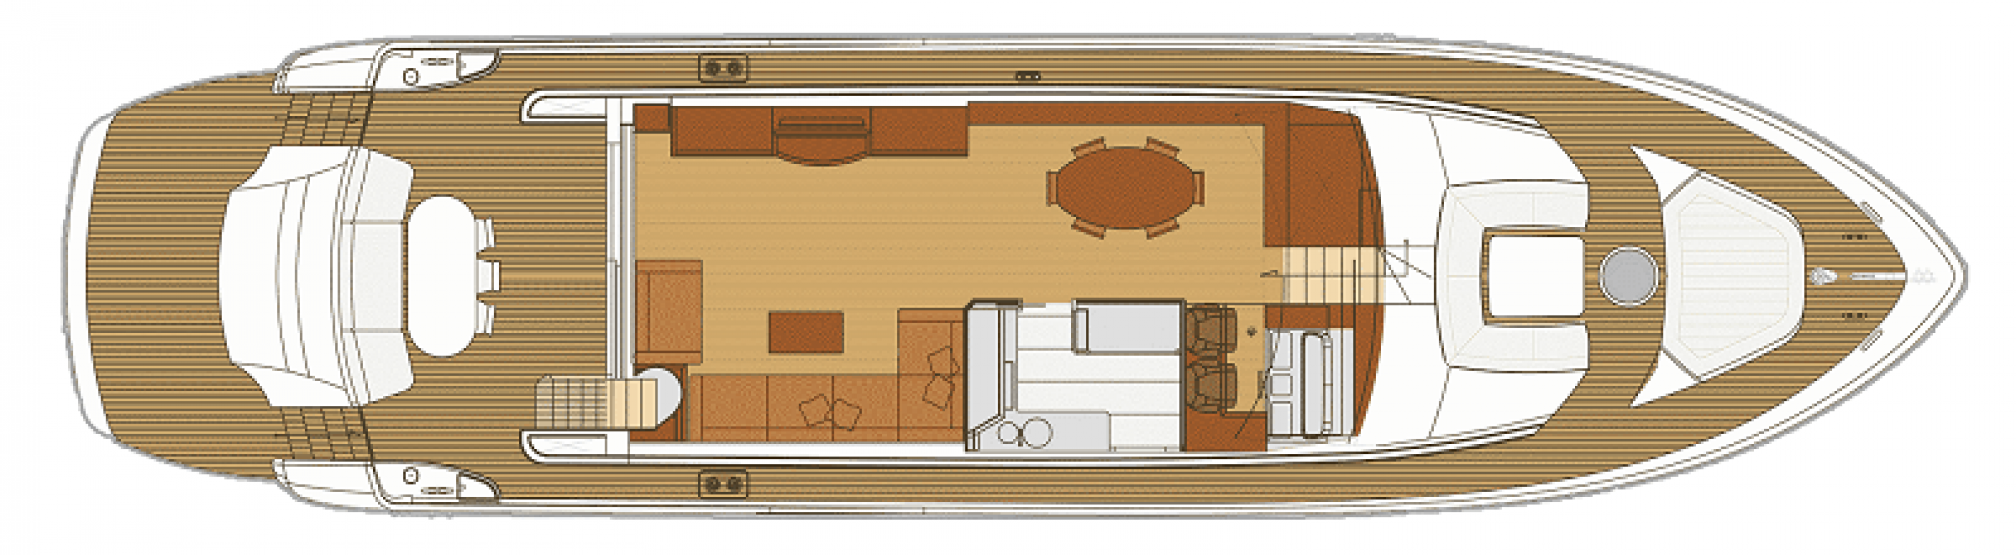 Deauville 76 Blue Angel yacht charter layout